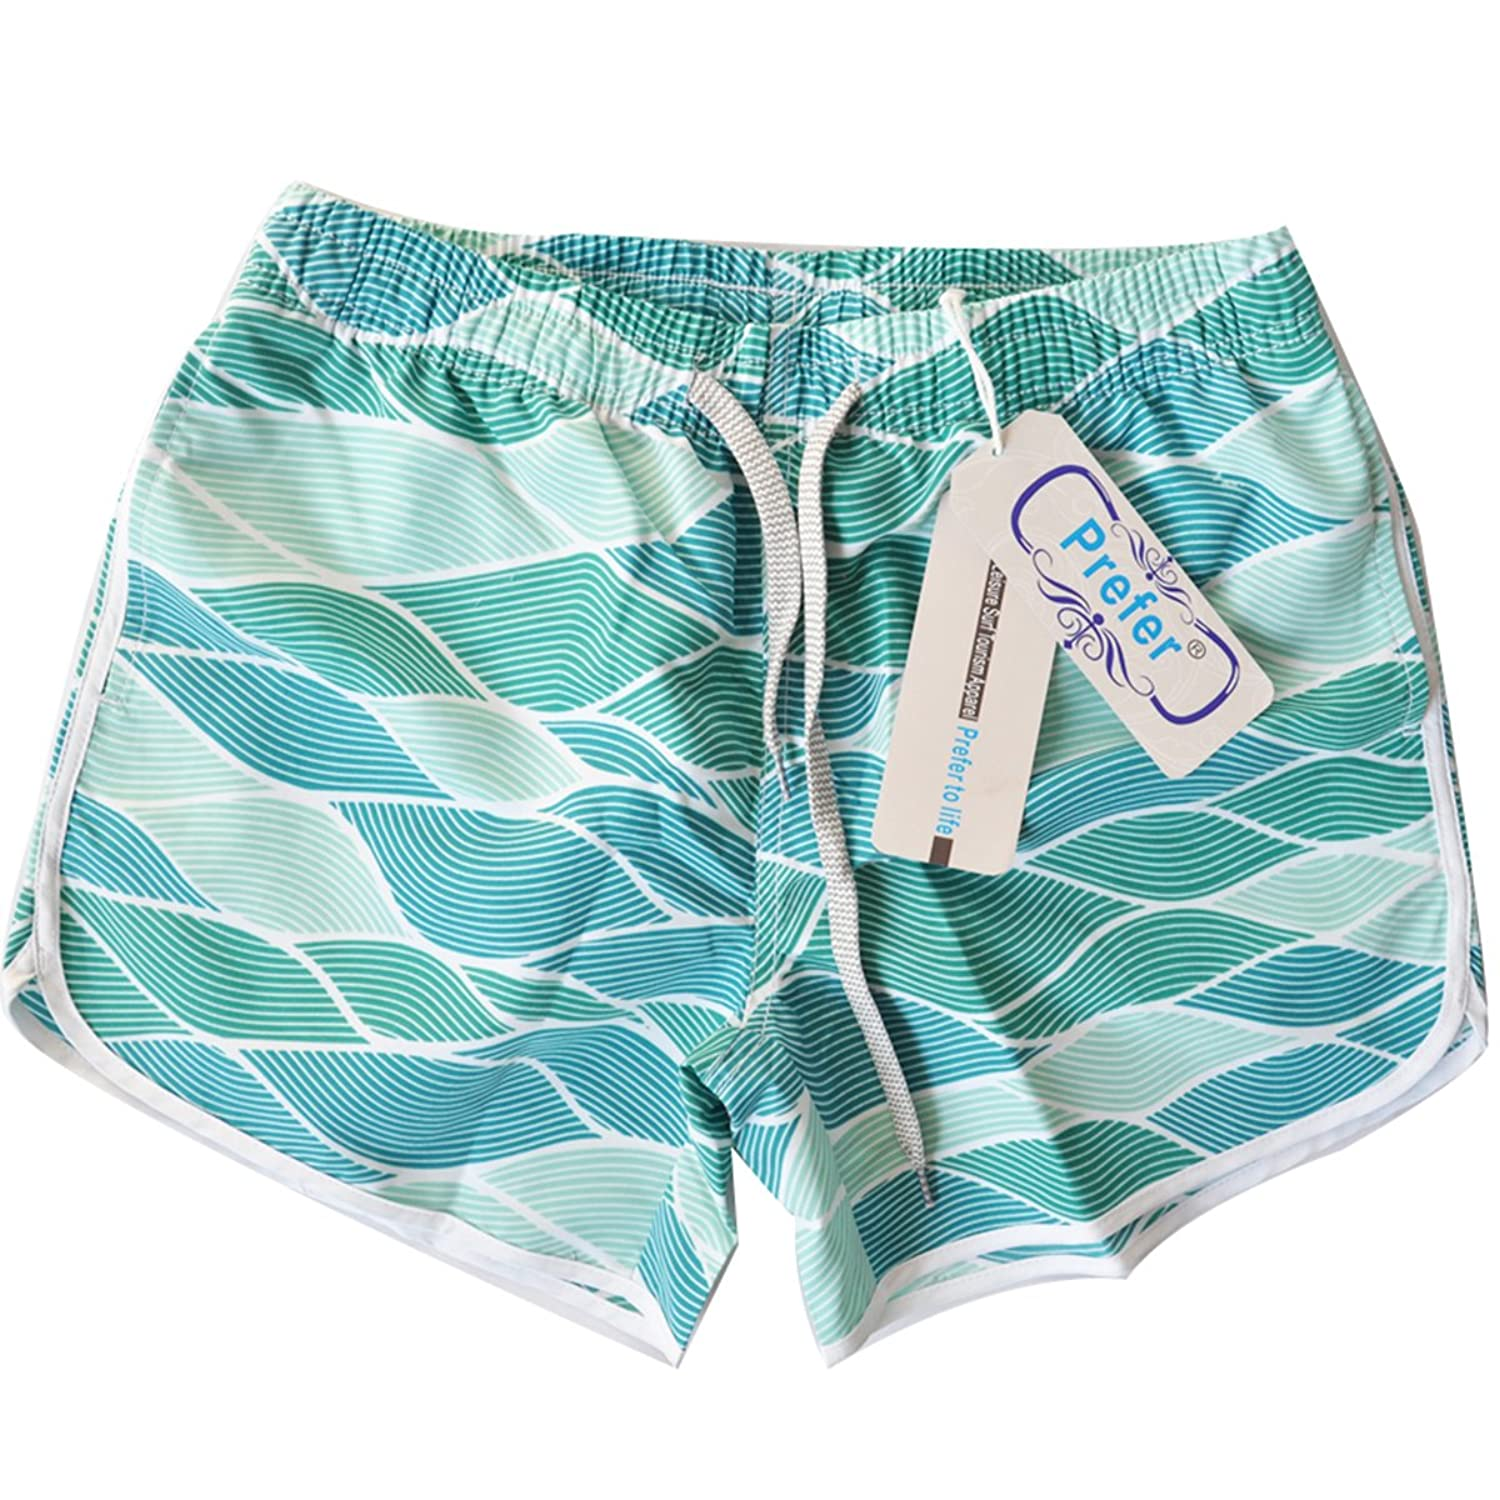 2d945eea2d Colorful art prints-Perfect color display-firm color not fade. Drawstring  fix with elastic waistband shorts closure. SIZE NOTE: These board shorts  Swim ...